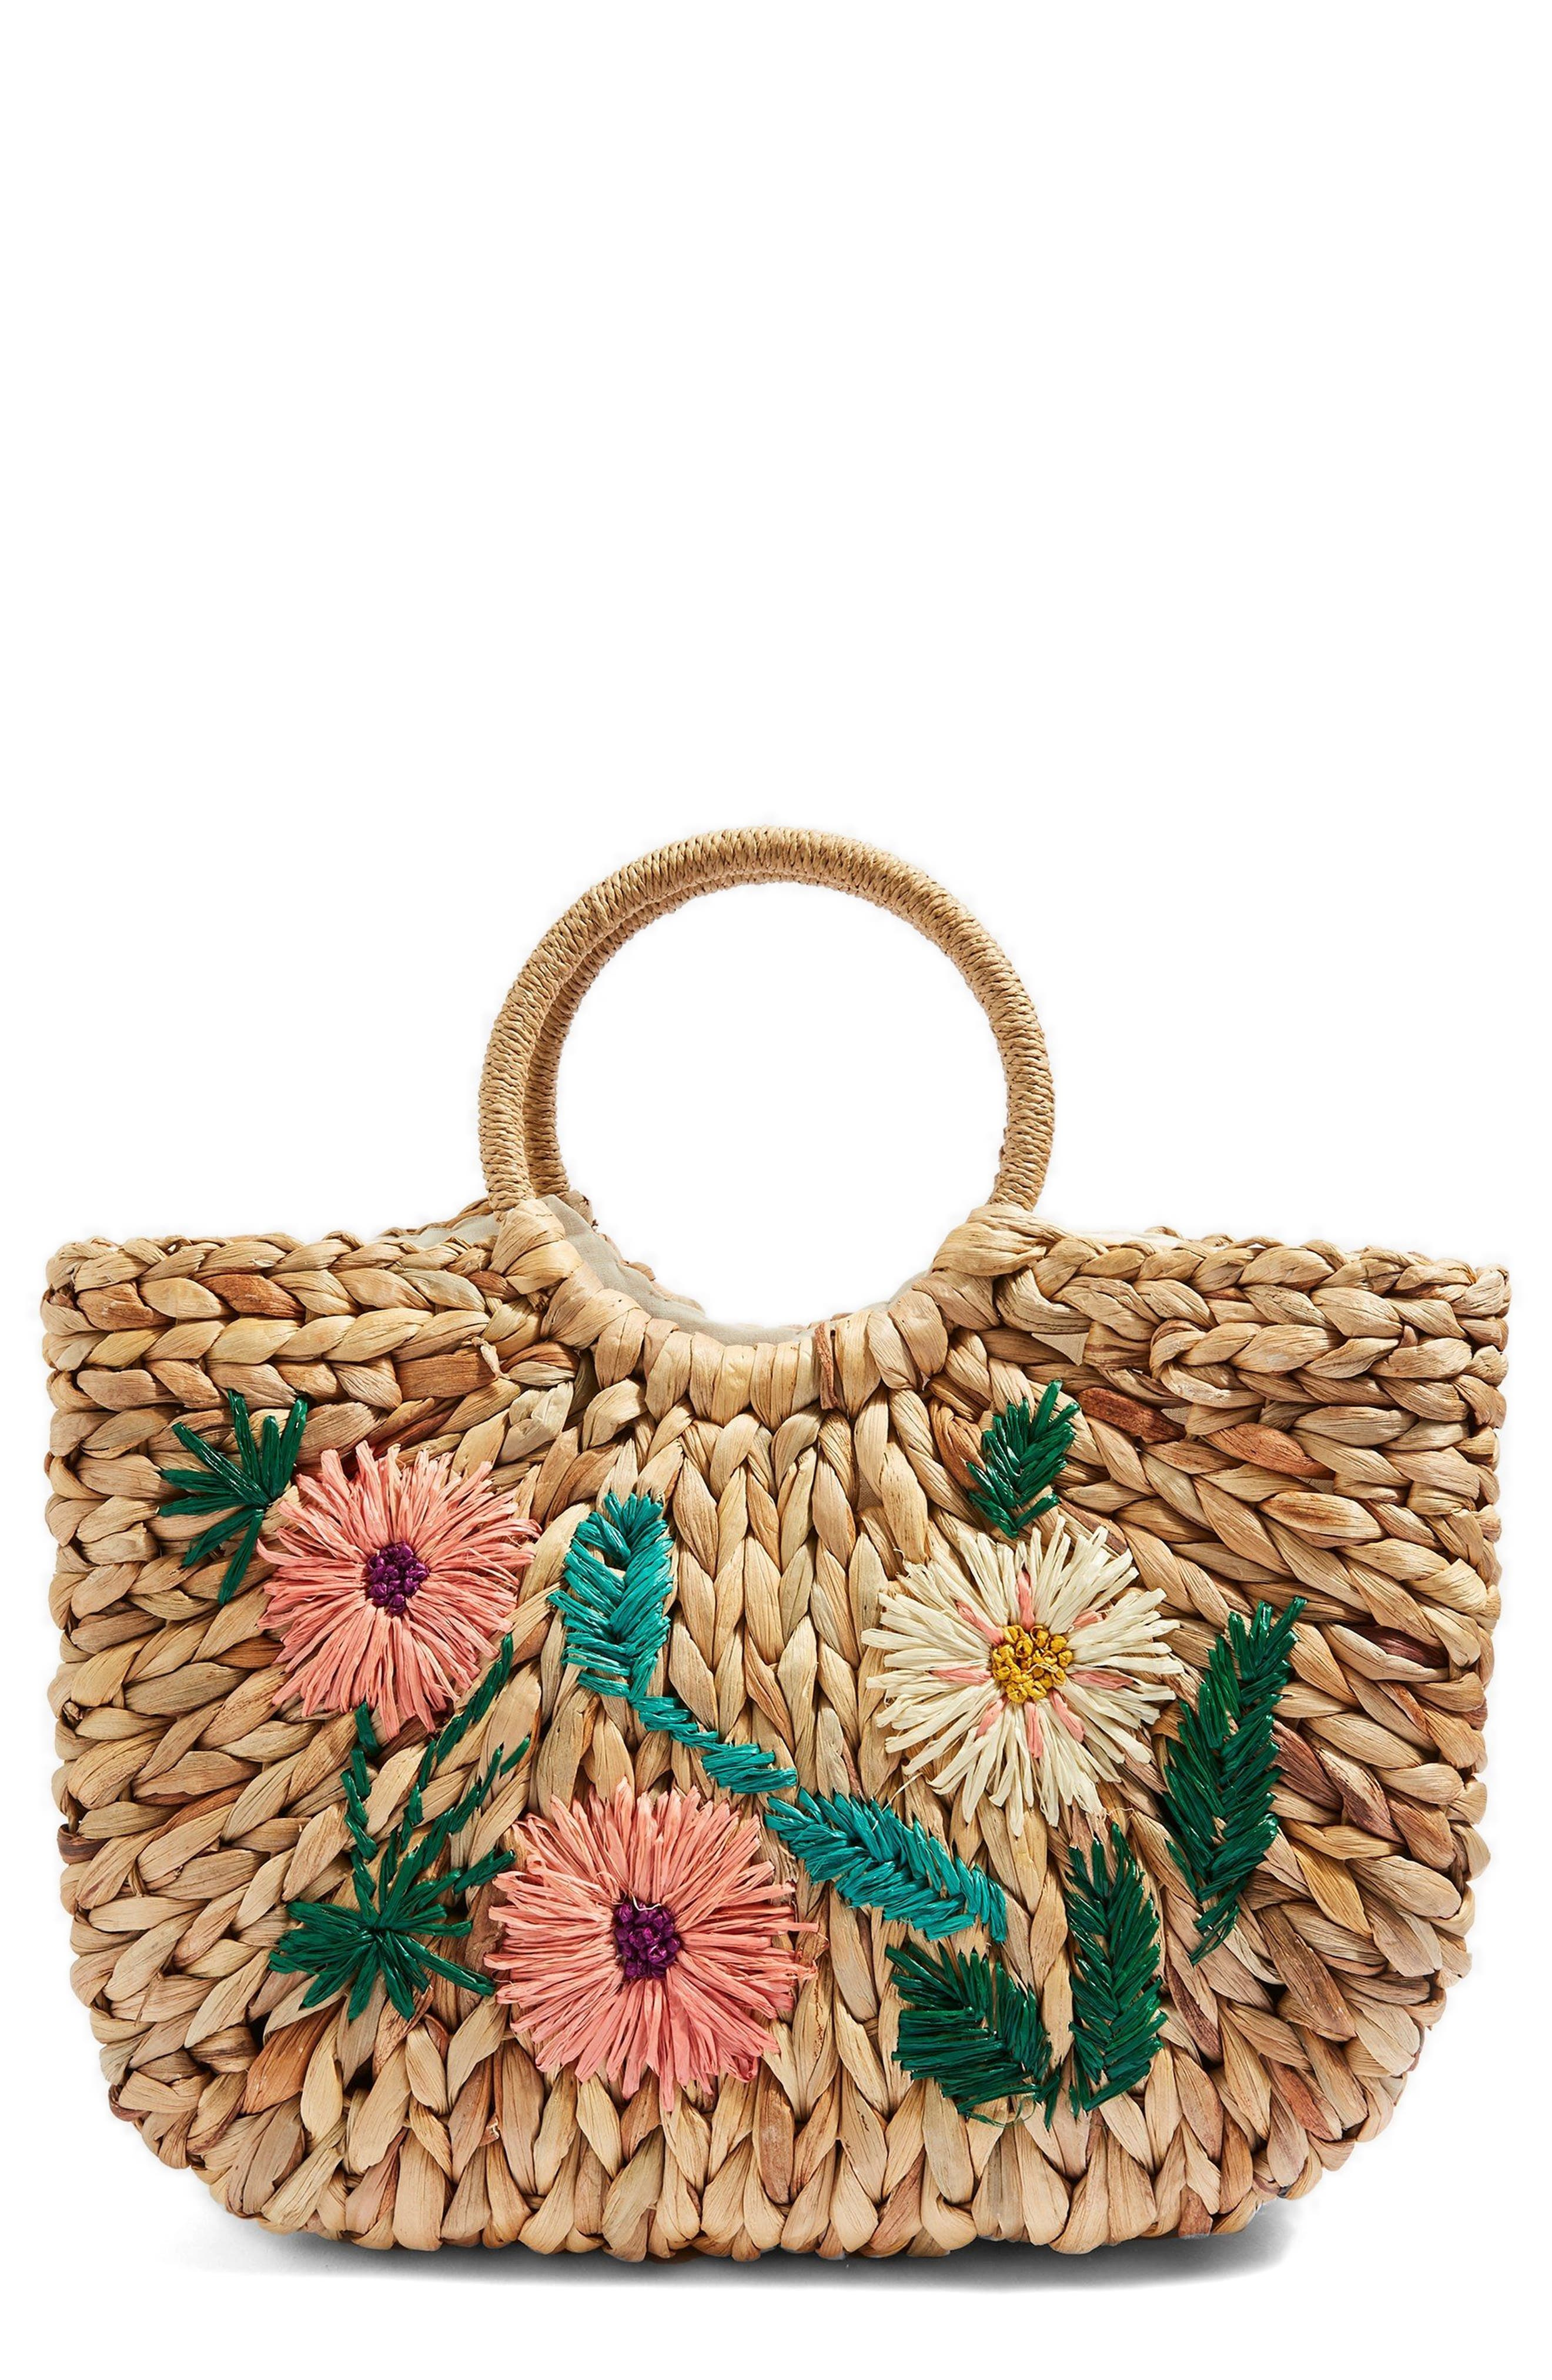 Beverly Floral Embroidered Straw Tote Bag,                         Main,                         color, Nude Multi